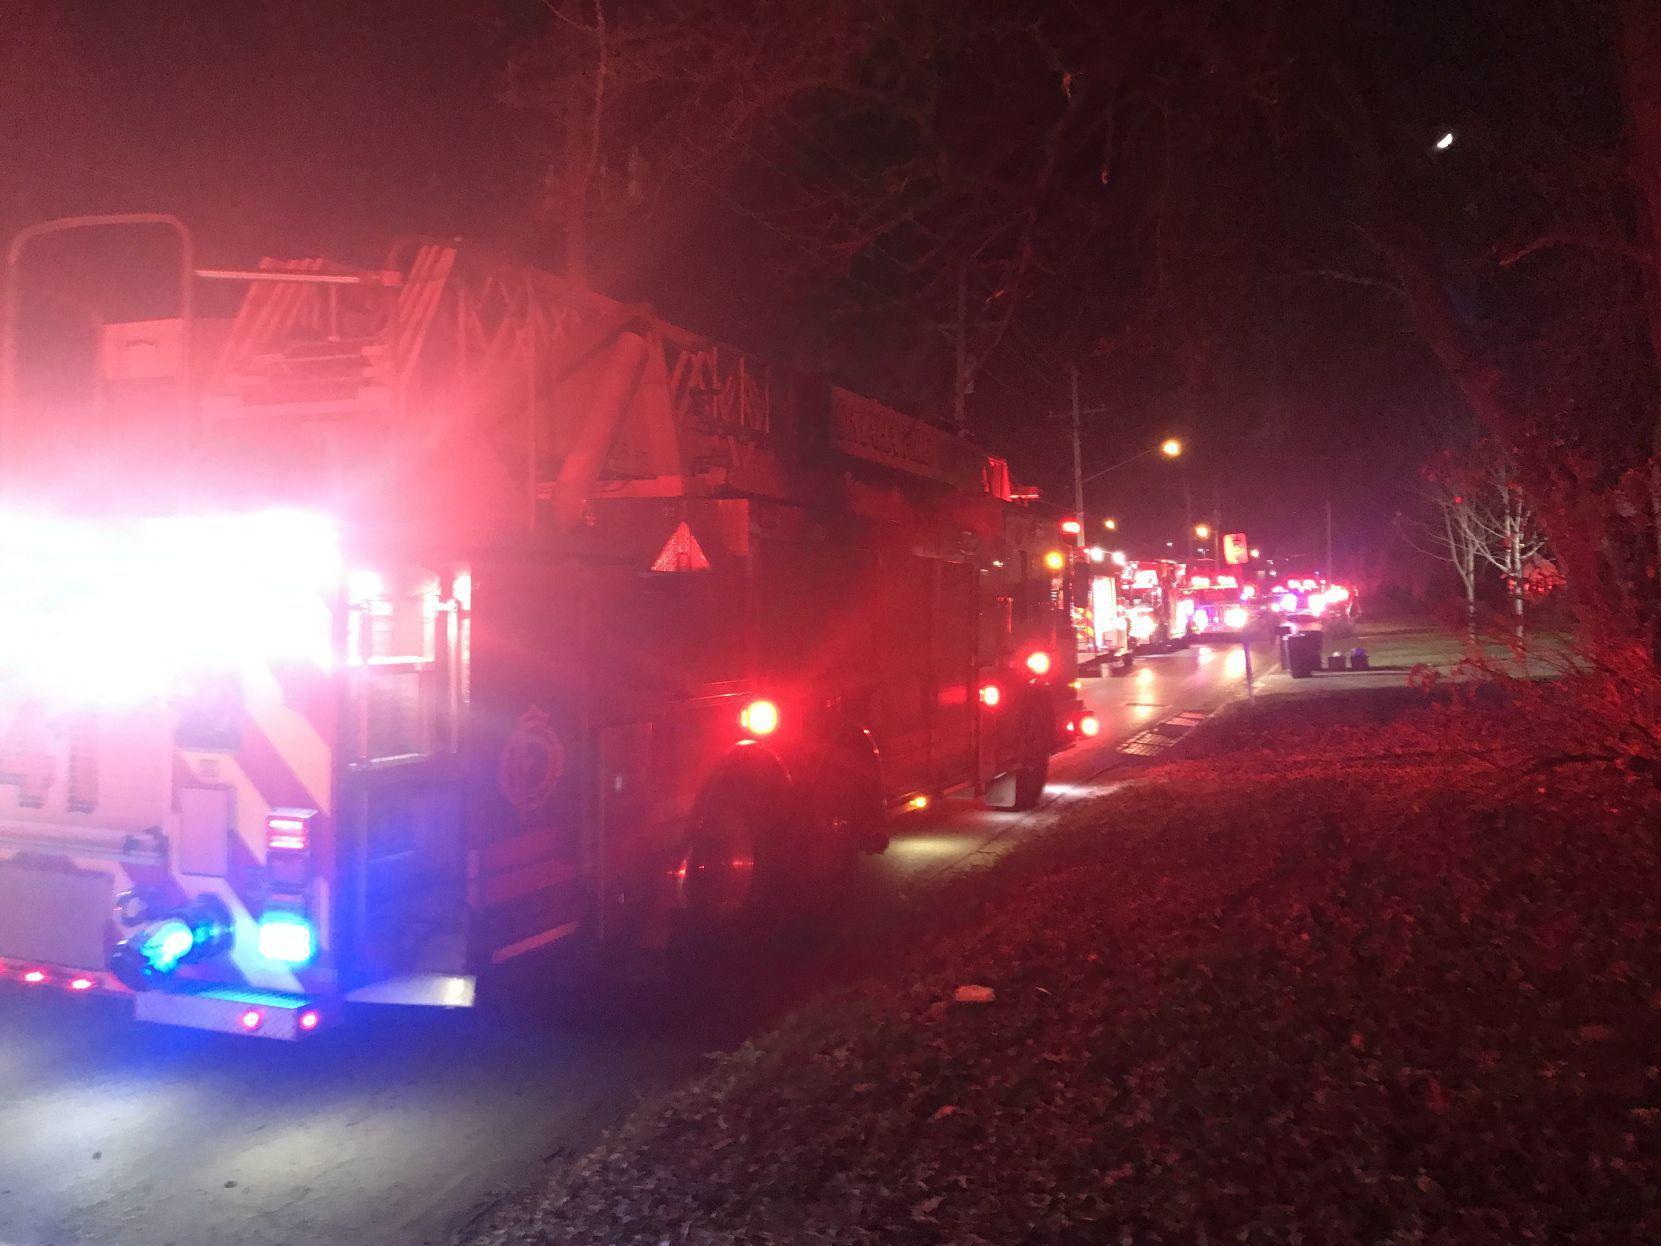 2 people hospitalized in serious condition after apartment fire